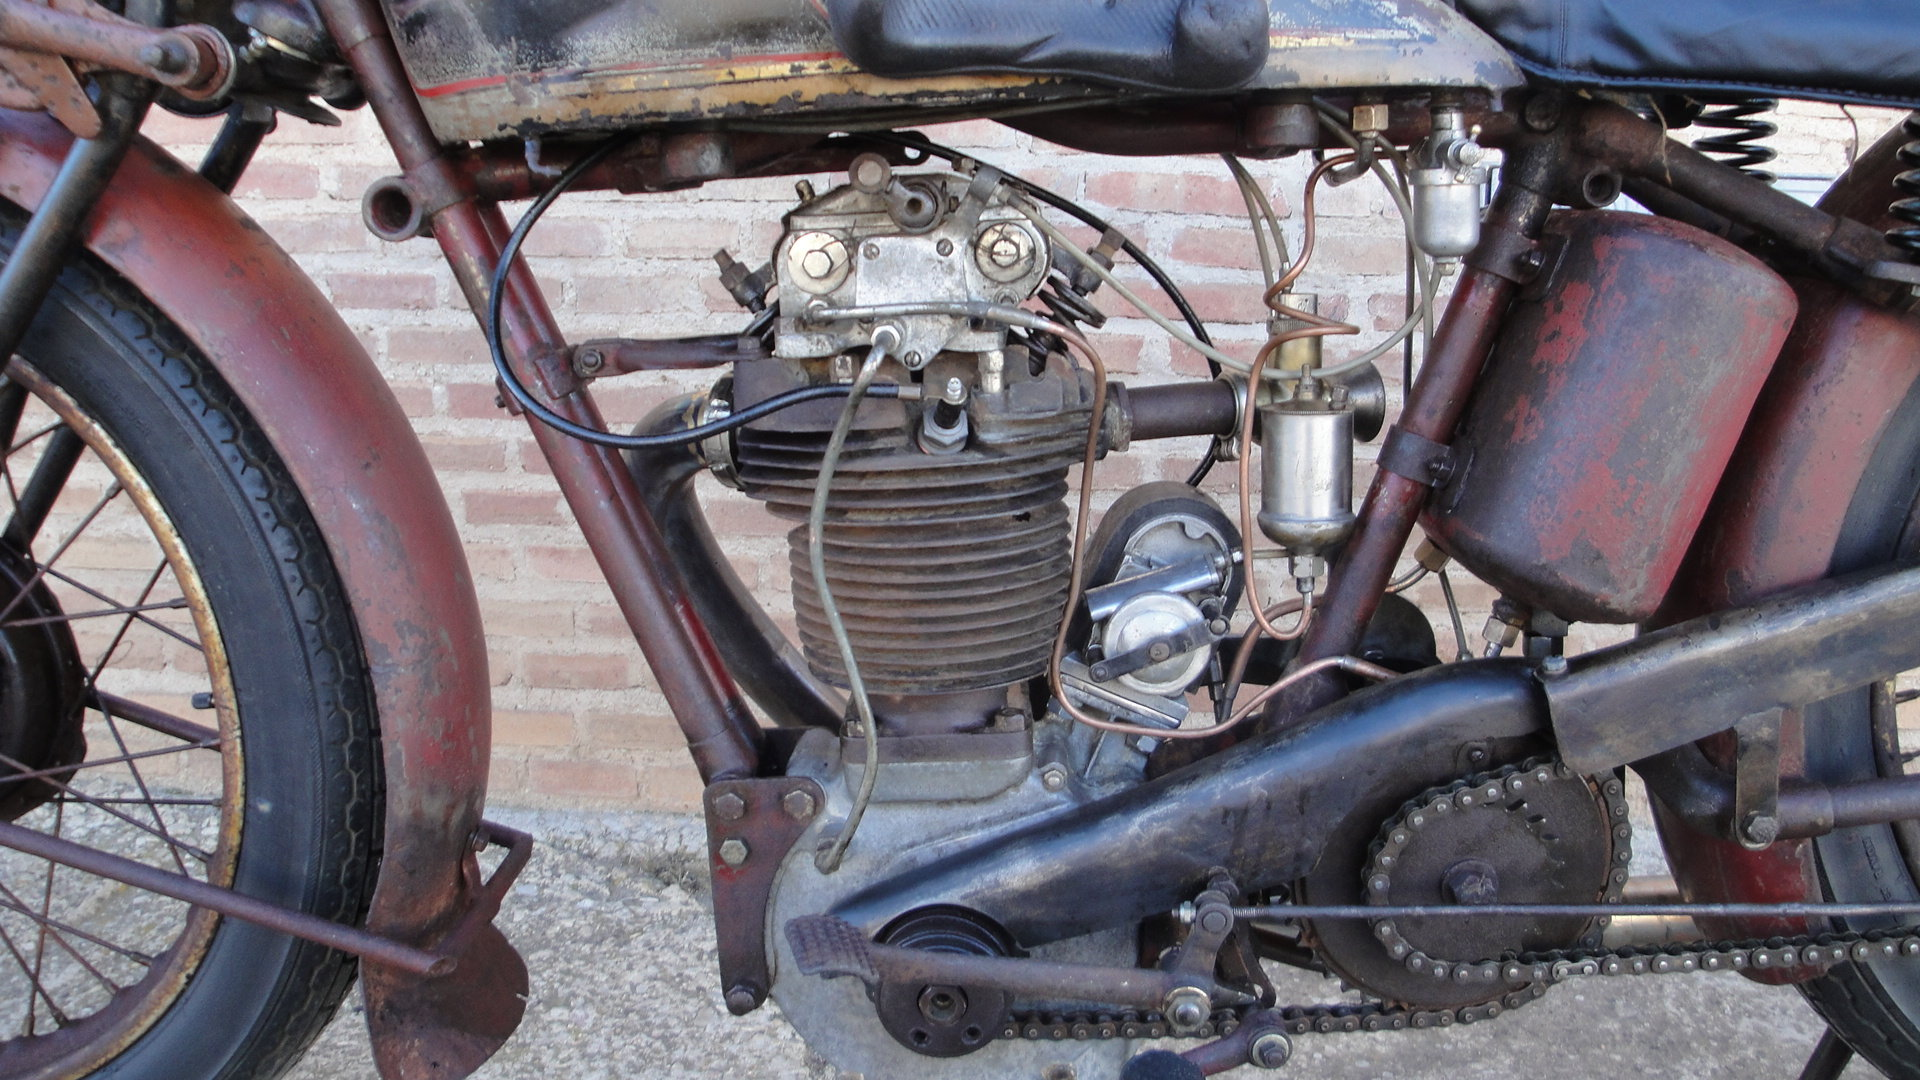 VELOCETTE KN 350cc OHC RACER YEAR 1929 For Sale (picture 4 of 6)